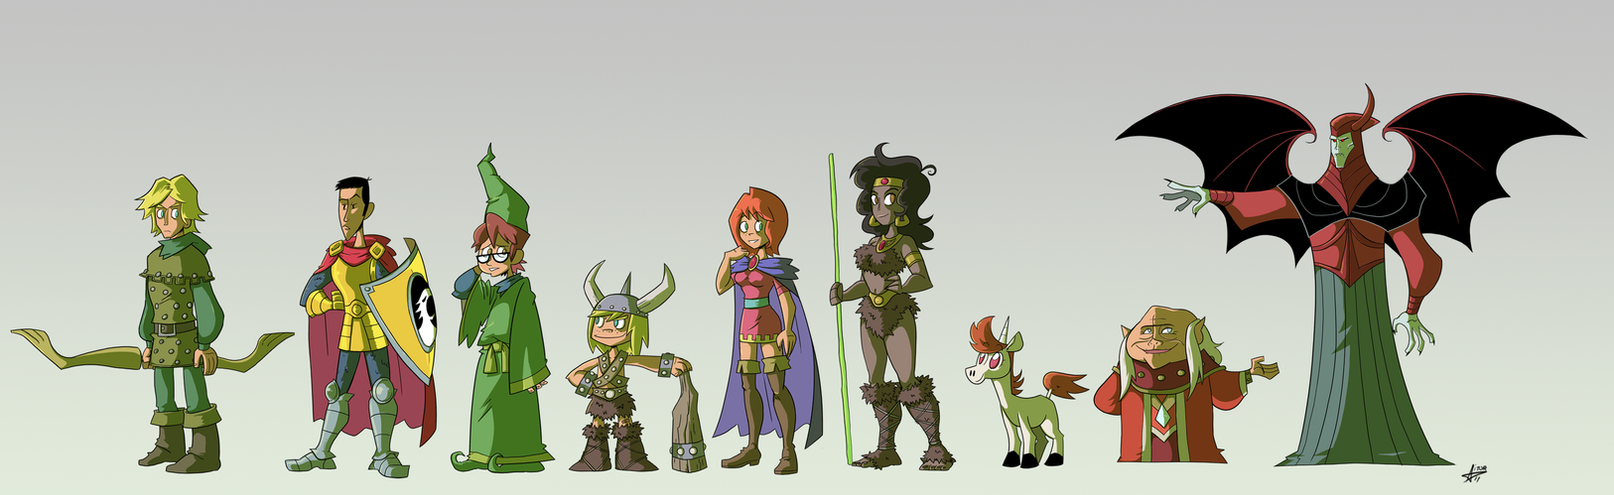 Dungeons and Dragons revisited by TerminAitor